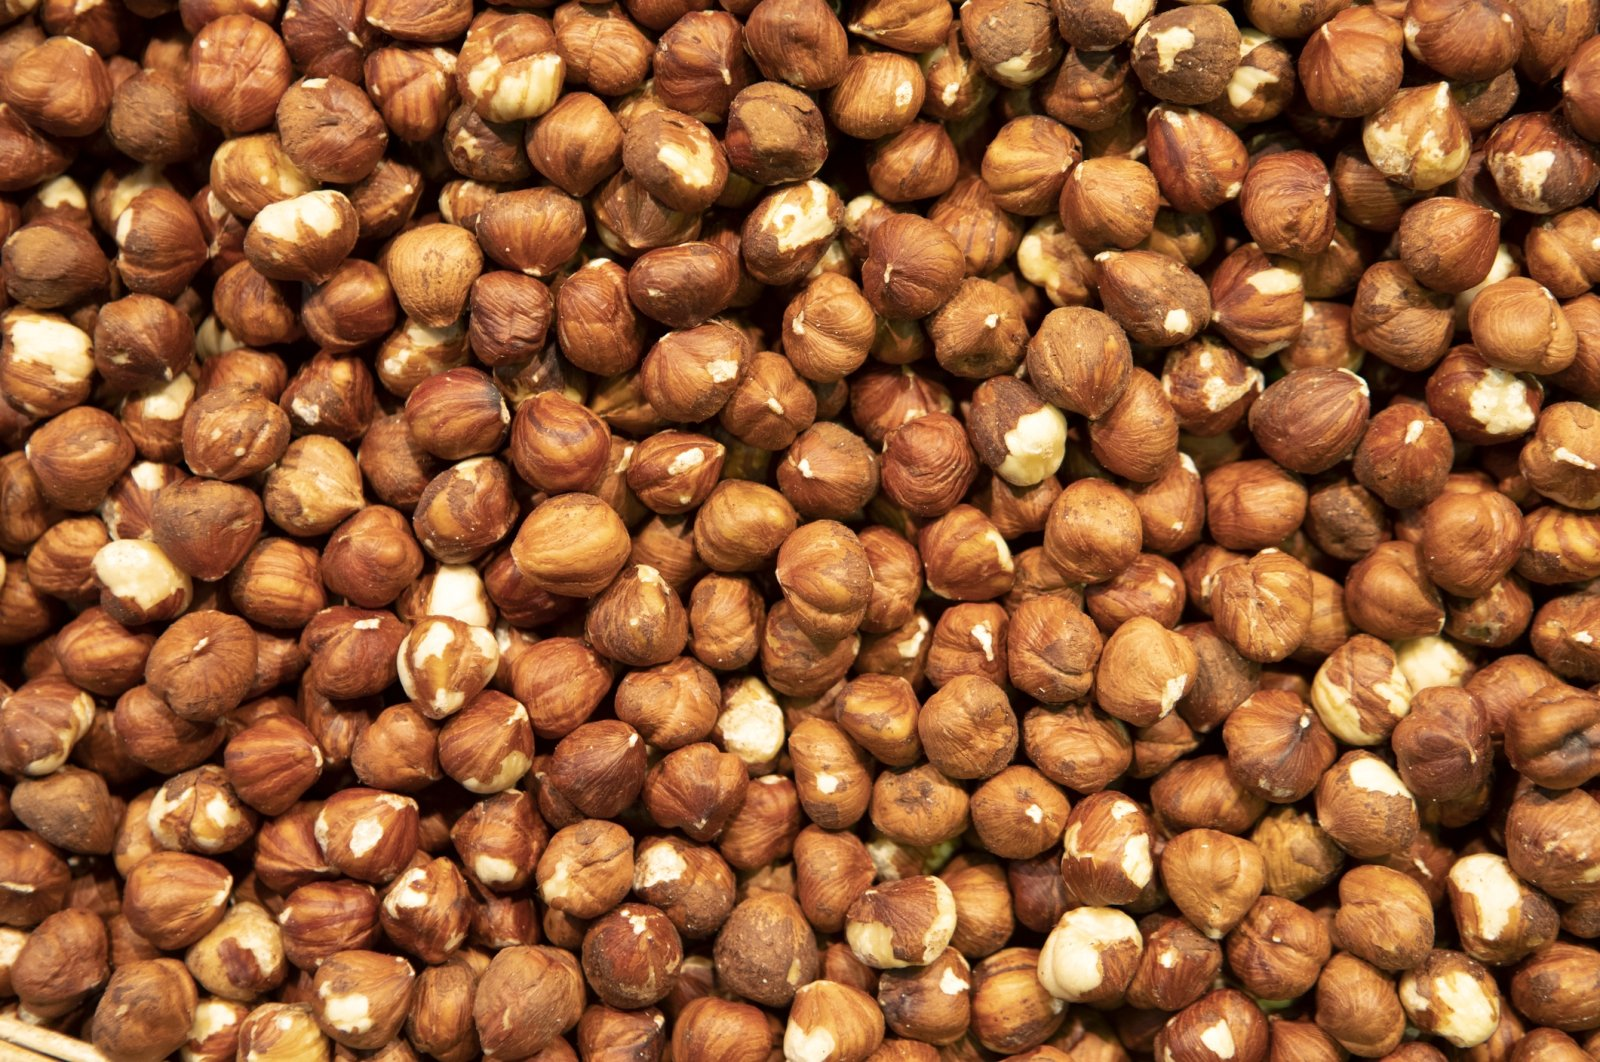 """Often referred to as the """"green gold,"""" fresh and unroasted hazelnuts are a great source of nutrients. (iStock Photo)"""